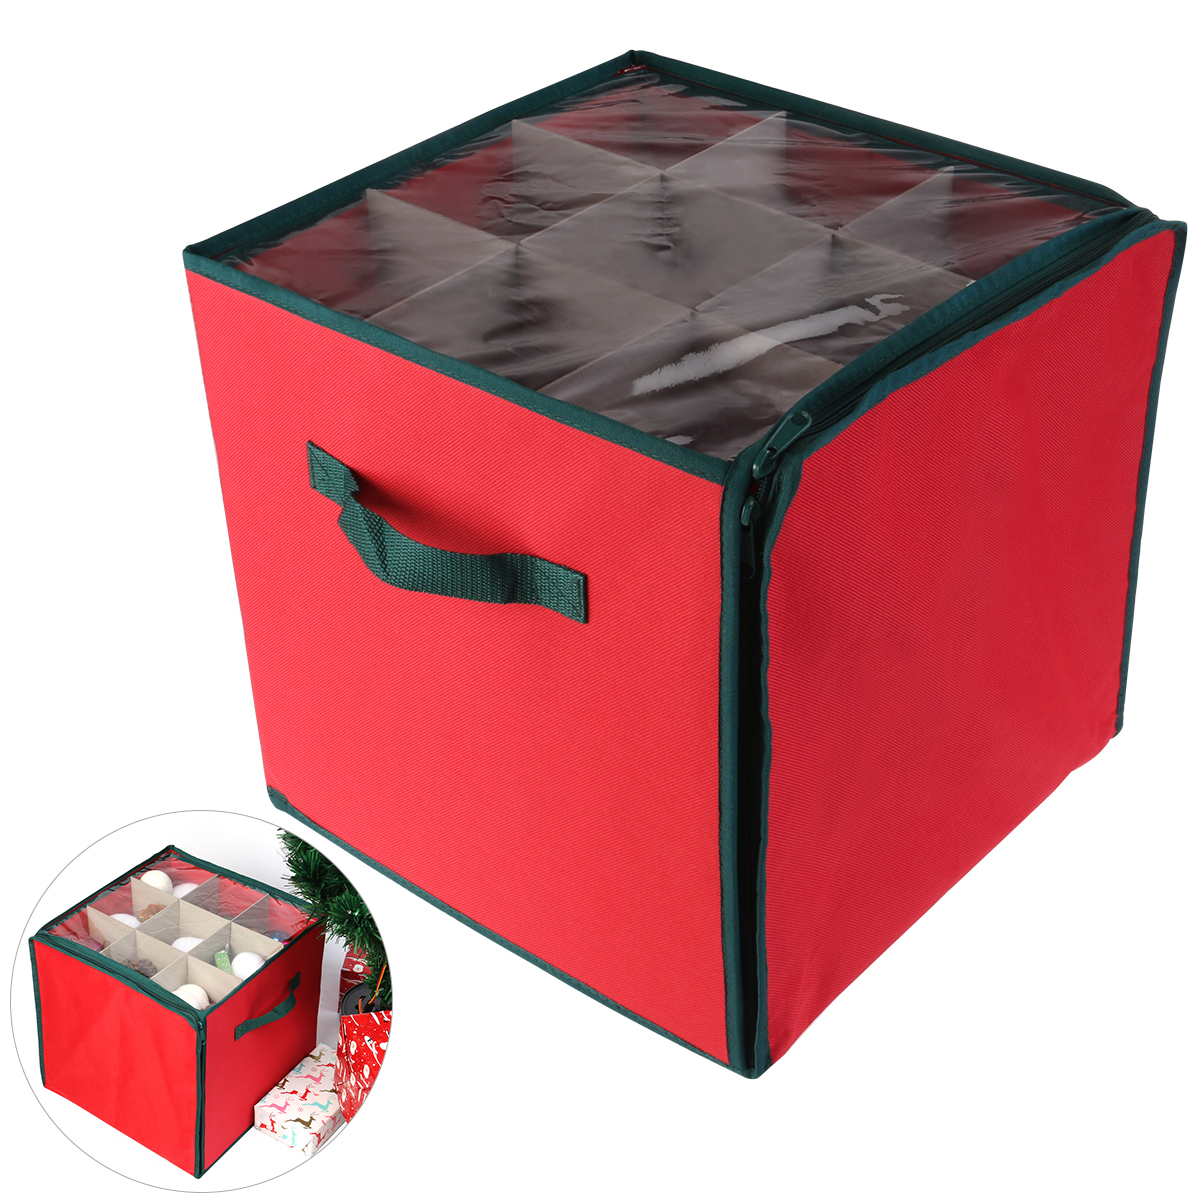 NICEXMAS Holiday Christmas Ornament Storage Chest with 3 Trays Holds Up to 27 Ornaments Balls with Dividers (Red) New Year(China (Mainland))